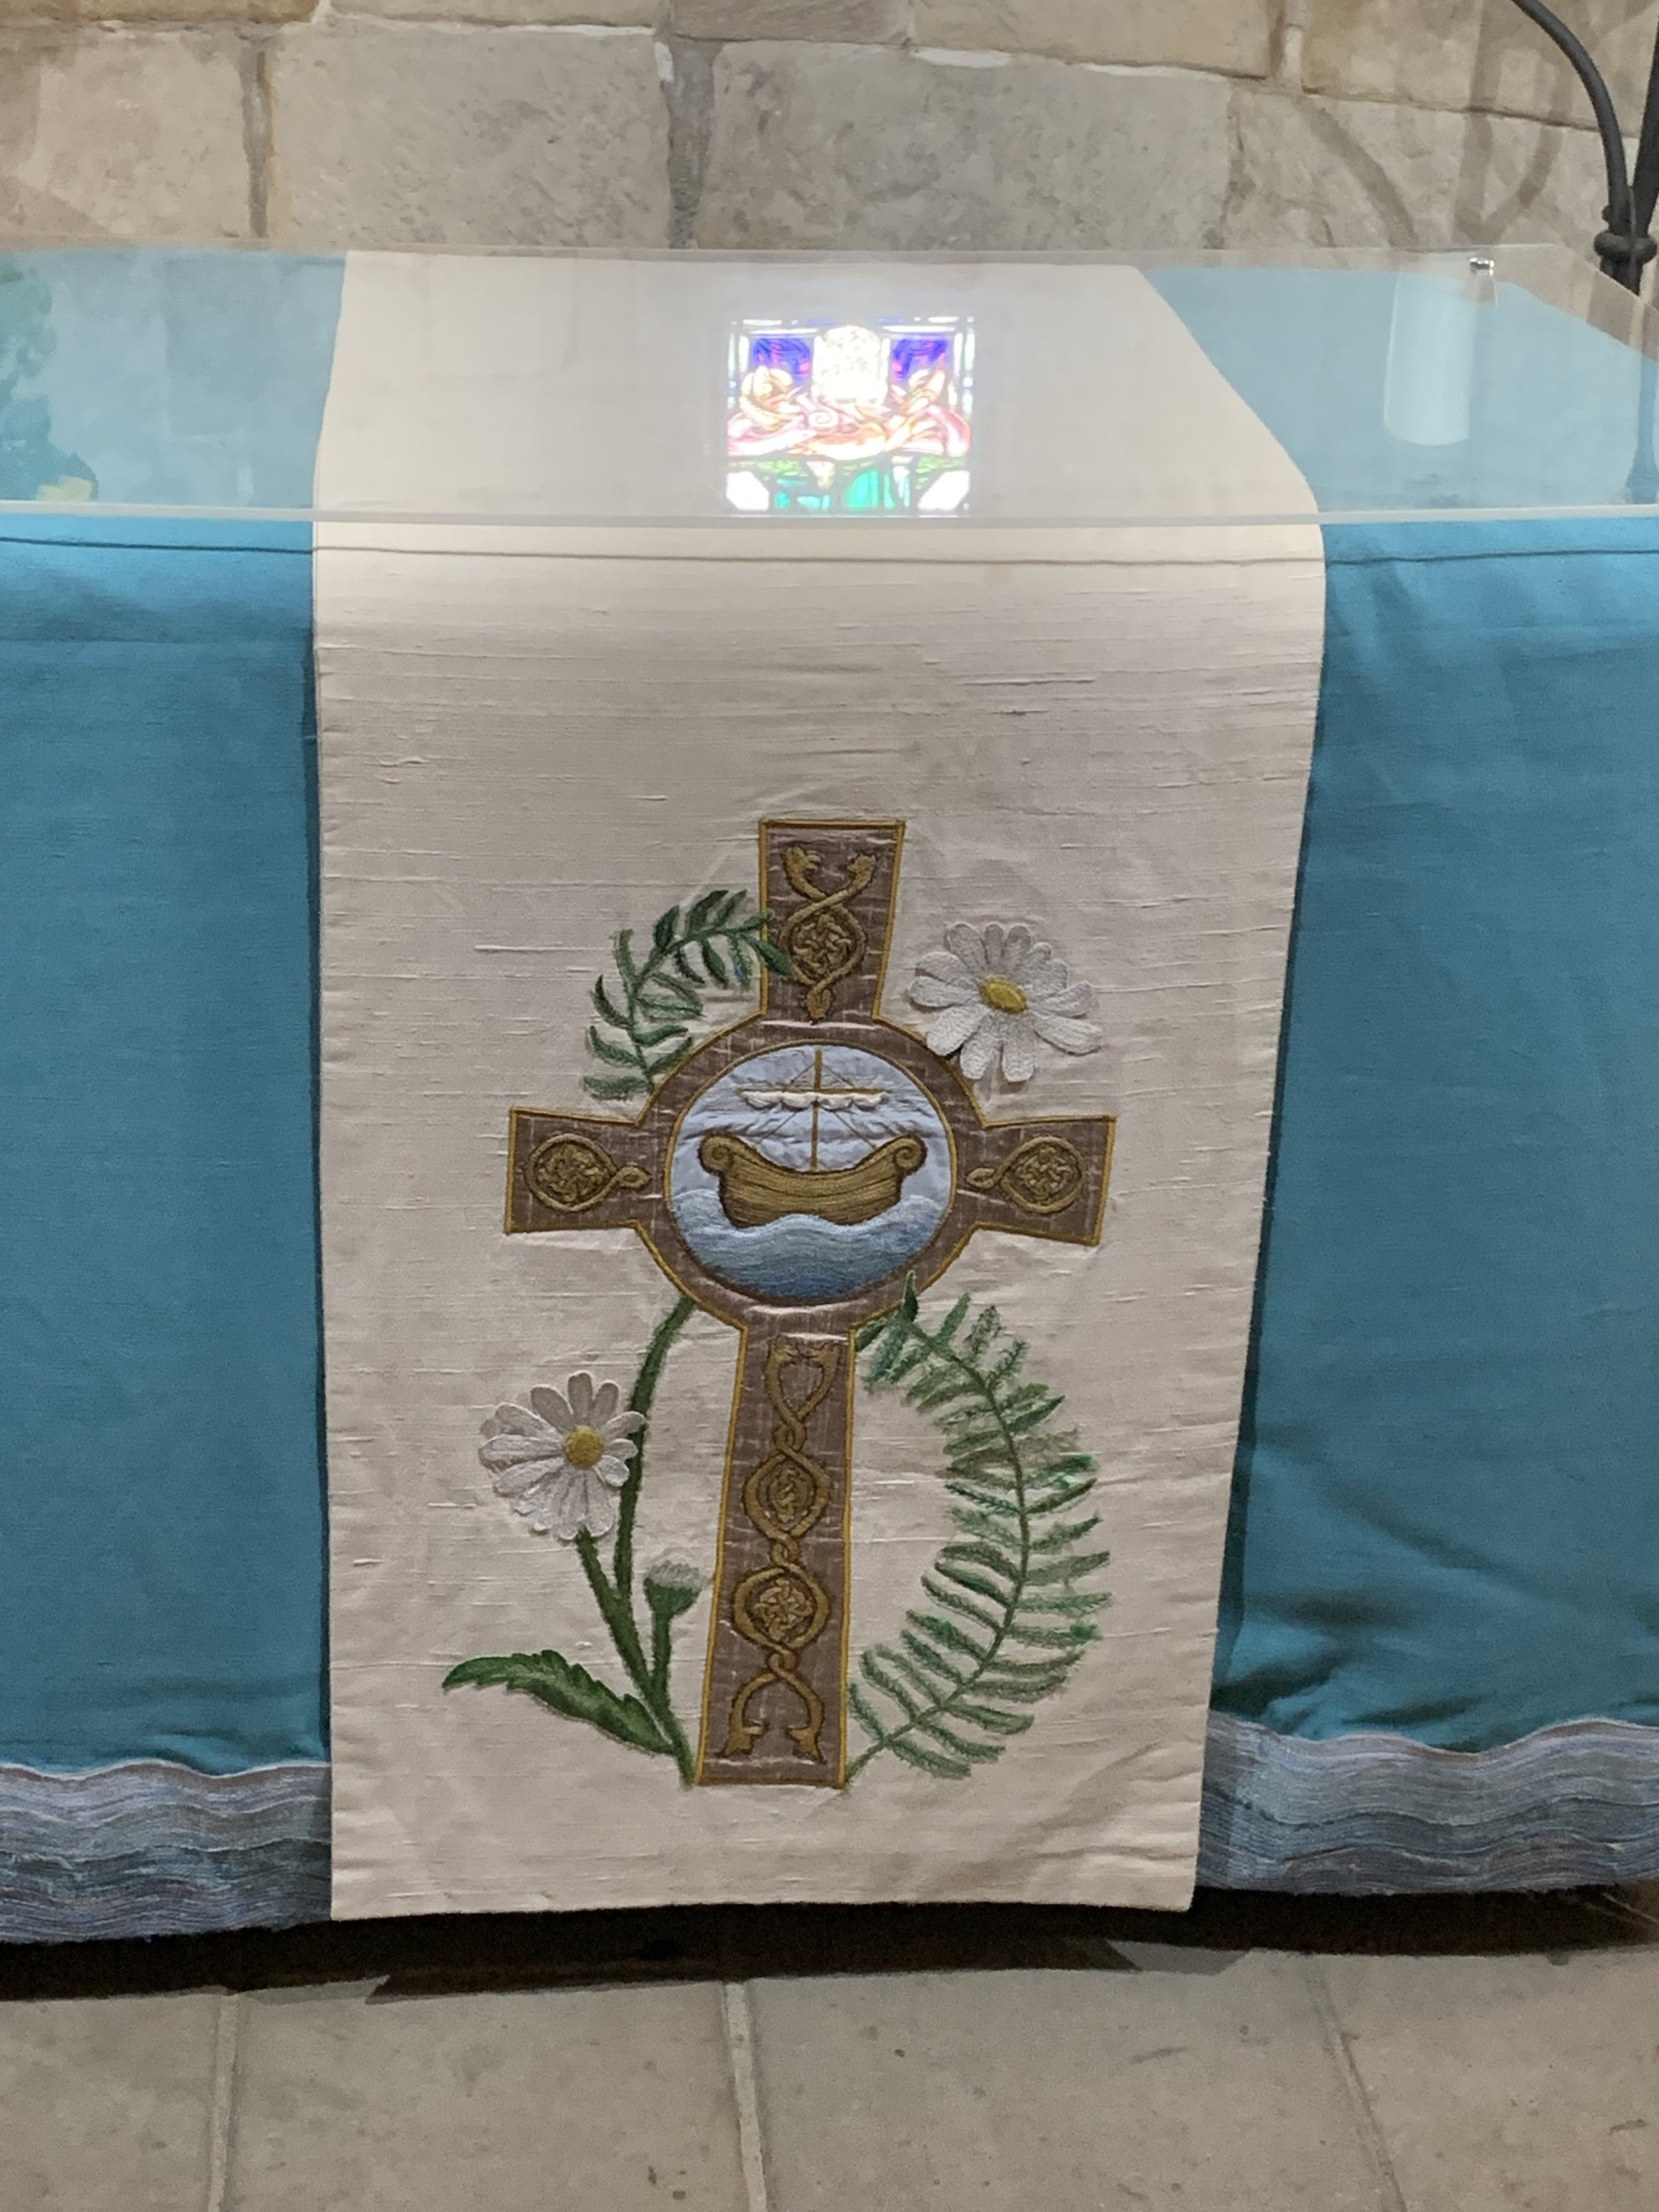 St. Margaret's Chapel altar cloth. This chapel is still used for weddings, baptisms, and other sacred rituals. photo by anne richardson